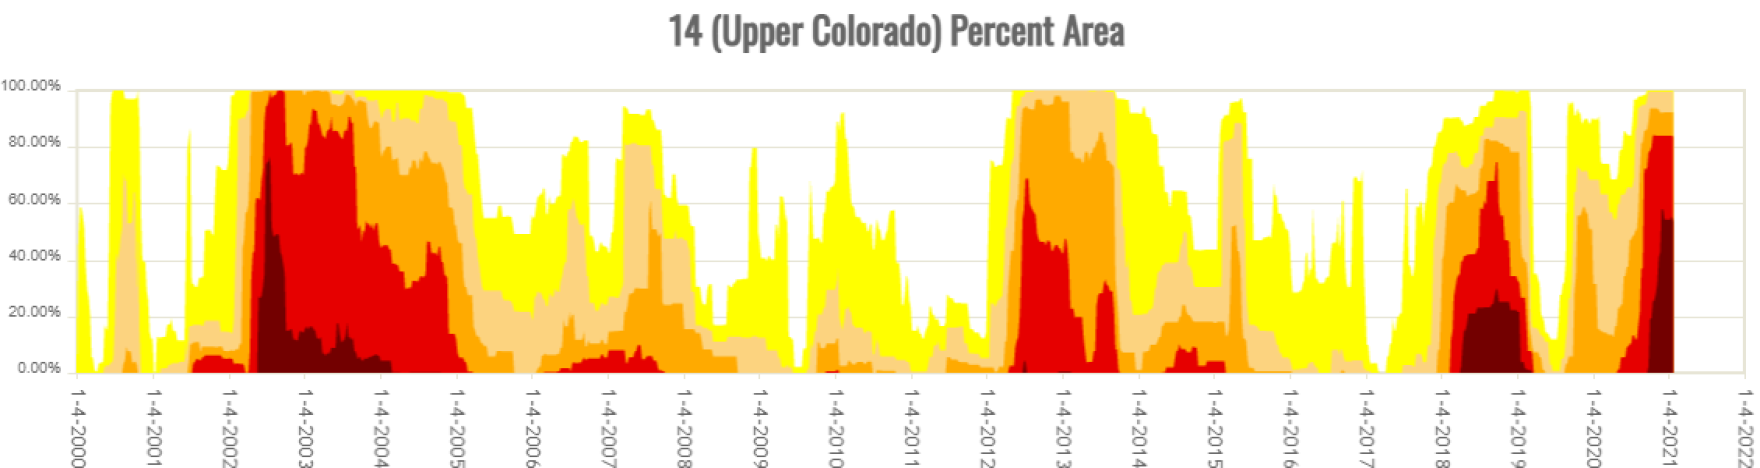 This time series graph shows the percent of the Upper Colorado River watershed in certain drought categories. The red and dark red represent extreme and exceptional drought, which combined have plagued the basin in 2002, 2018 and now in 2021